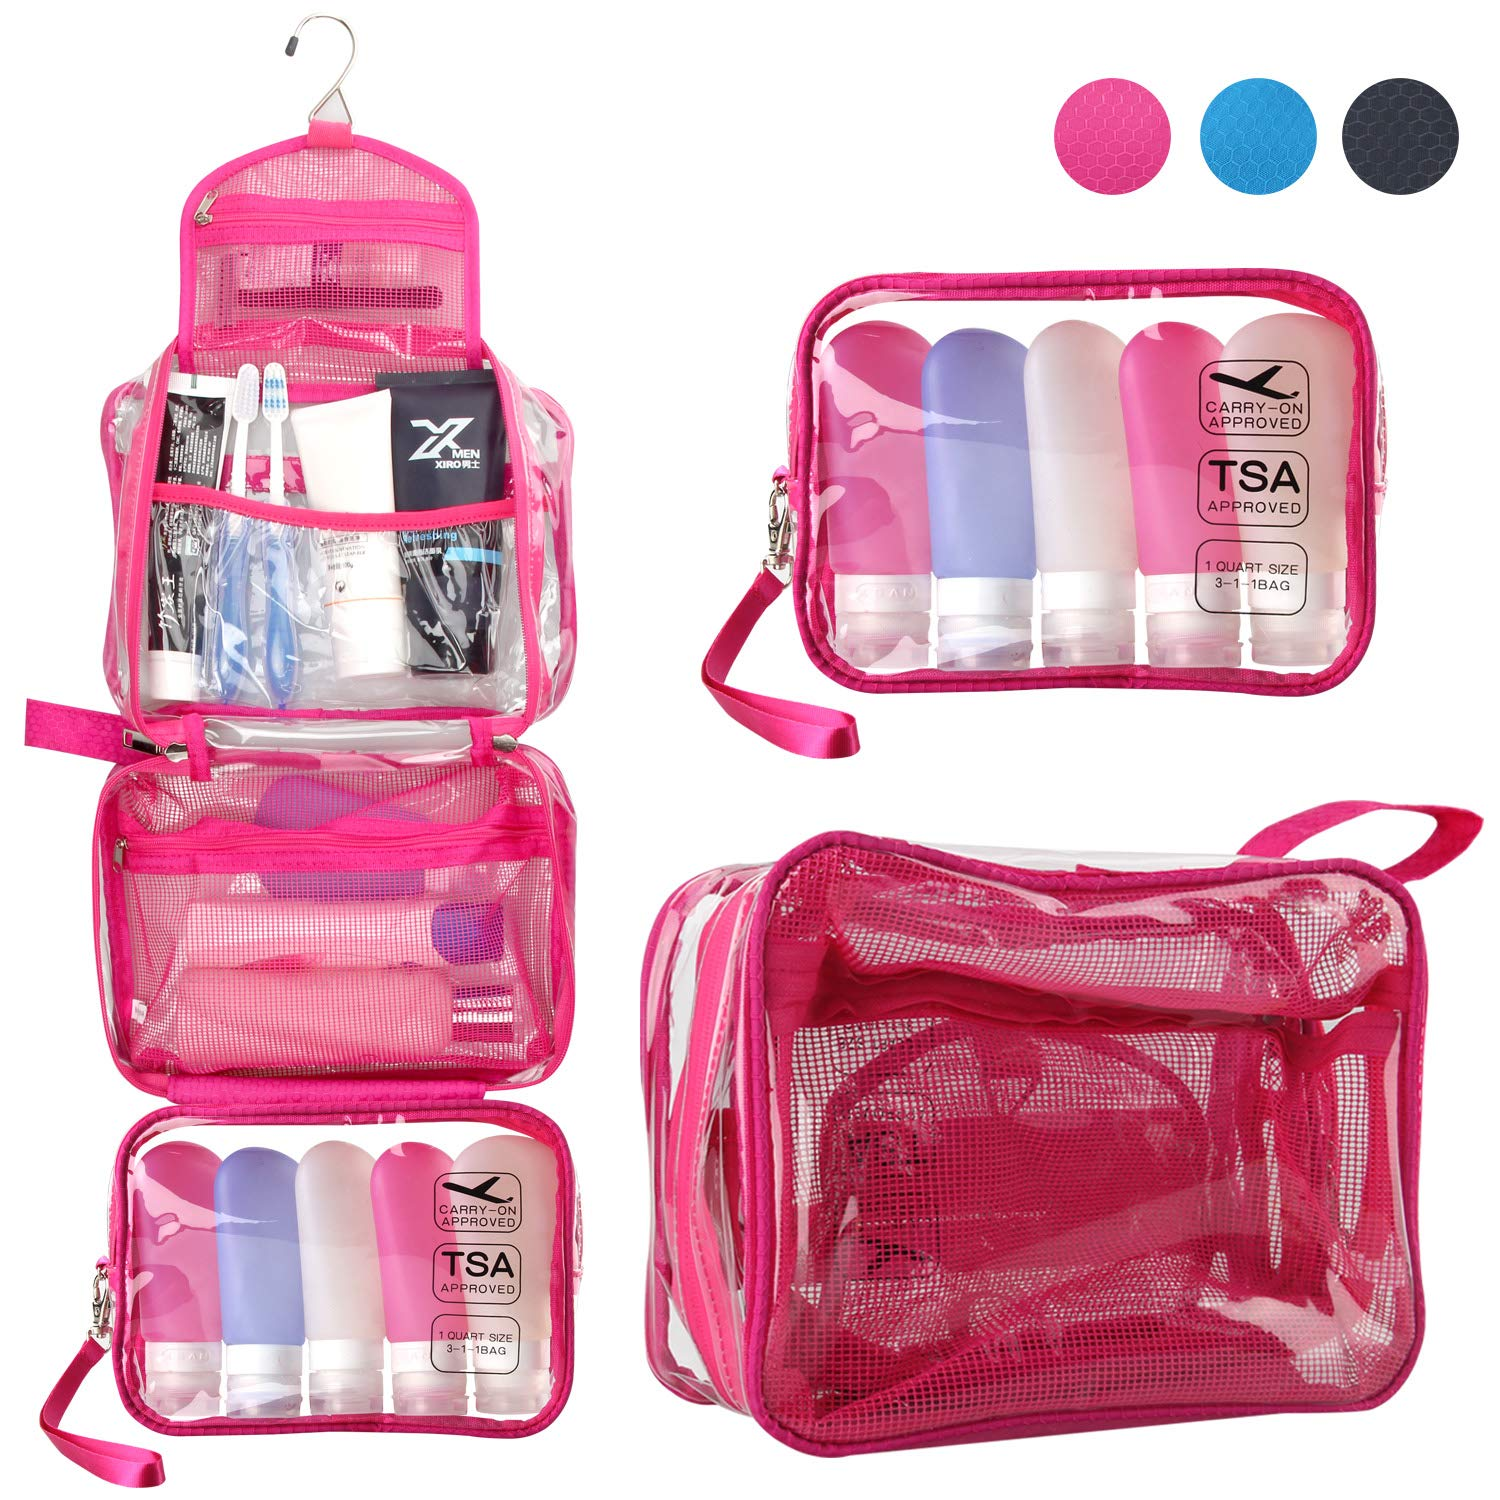 Toiletry Bag for Women, TSA Approved Clear Travel Hanging Toiletry Bag Detachable Small Bag Waterproof Carry On Airline 3-1-1 Compliant Bag Quart Sized Luggage Pouch Clear Hot Pink